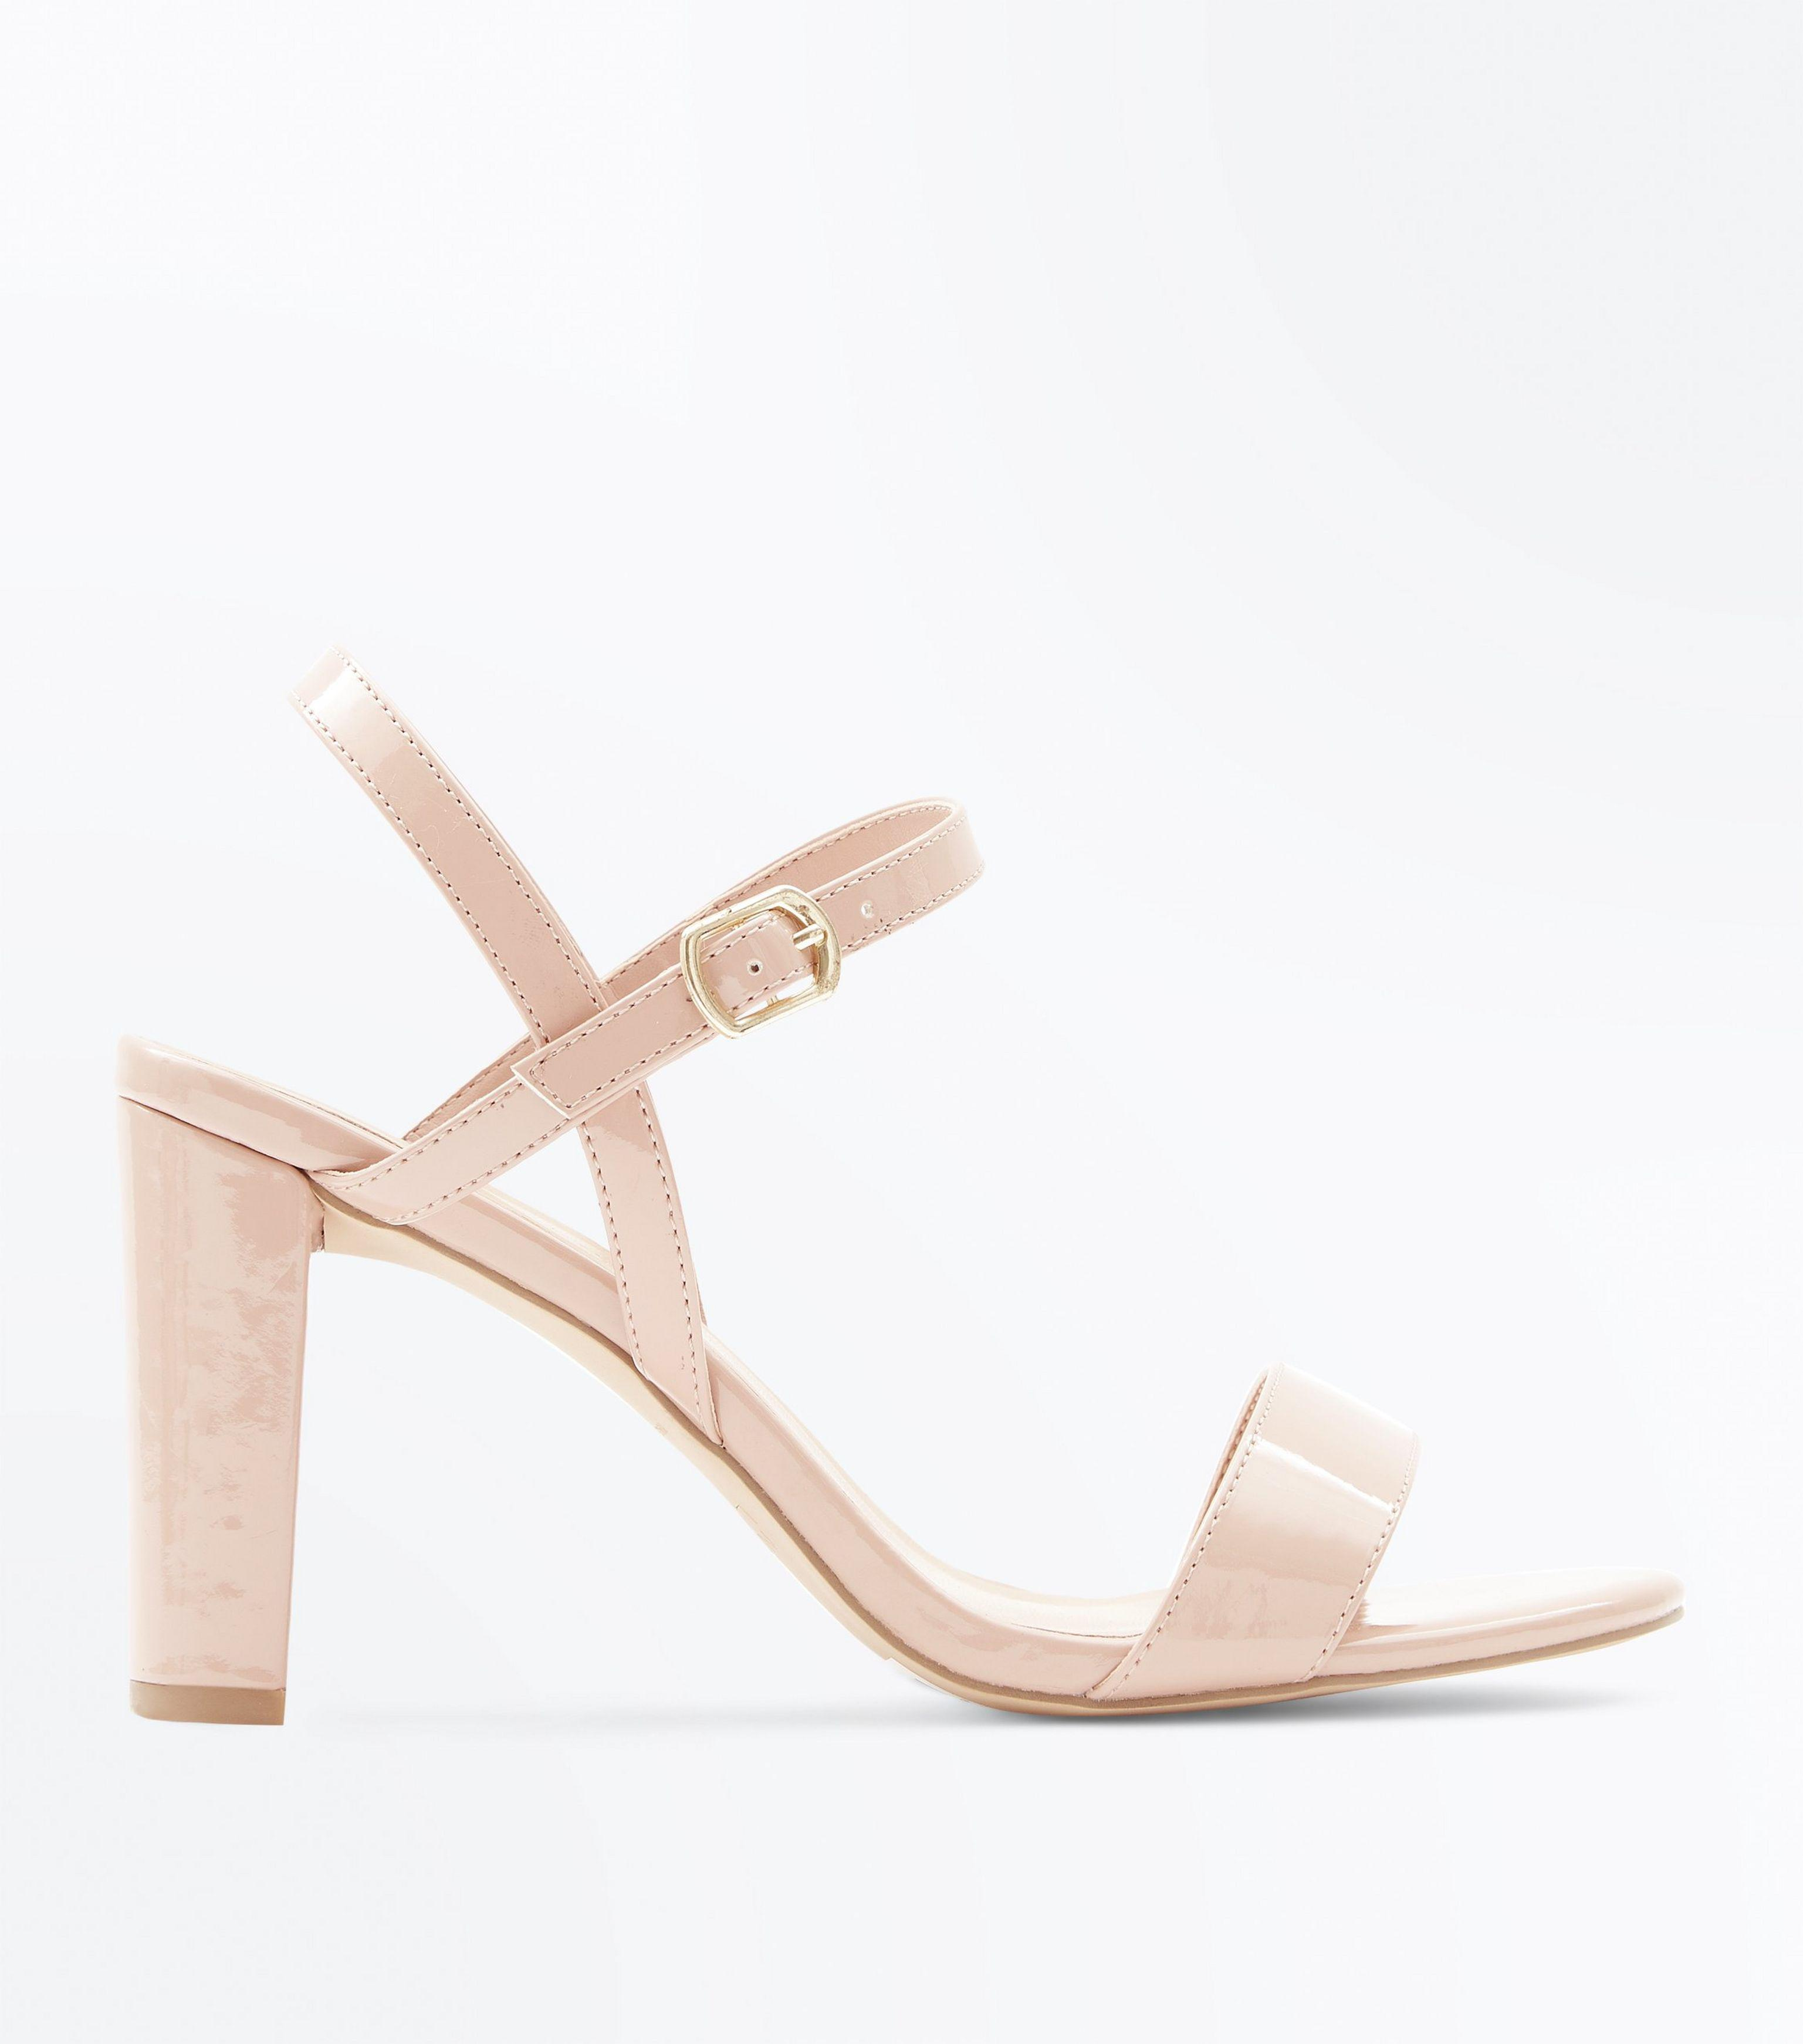 e2a06b847d3 New Look Wide Fit Nude Patent Block Heel Sandals in Natural - Lyst